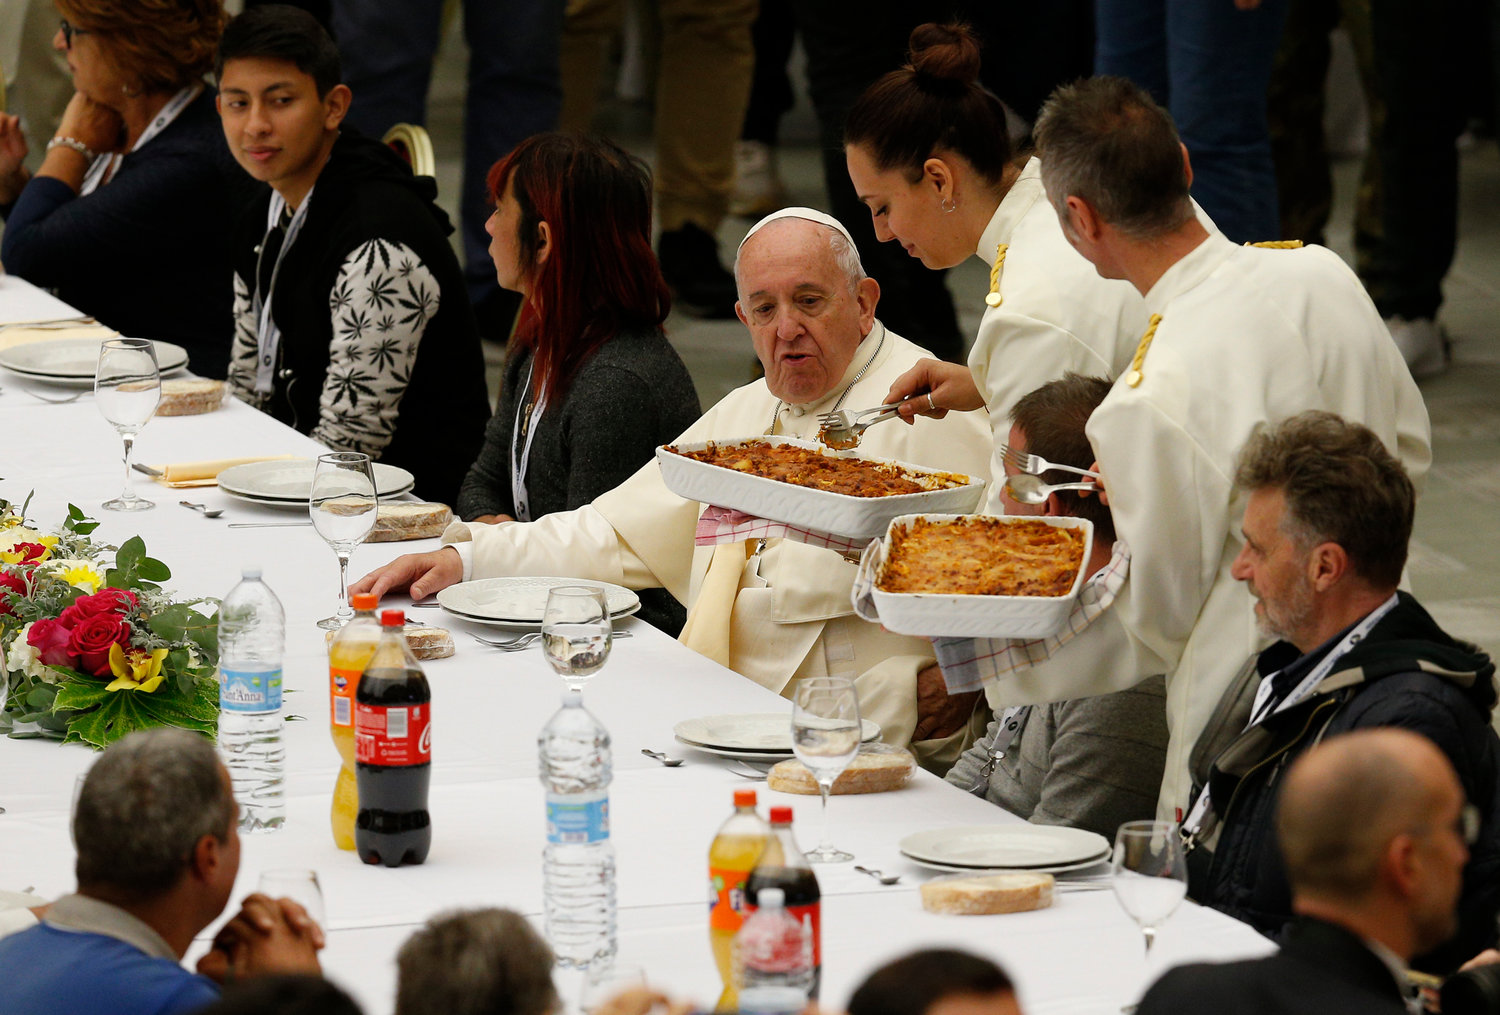 Pope Francis eats lunch with the poor in the Paul VI hall as he marks World Day of the Poor at the Vatican Nov. 17, 2019.